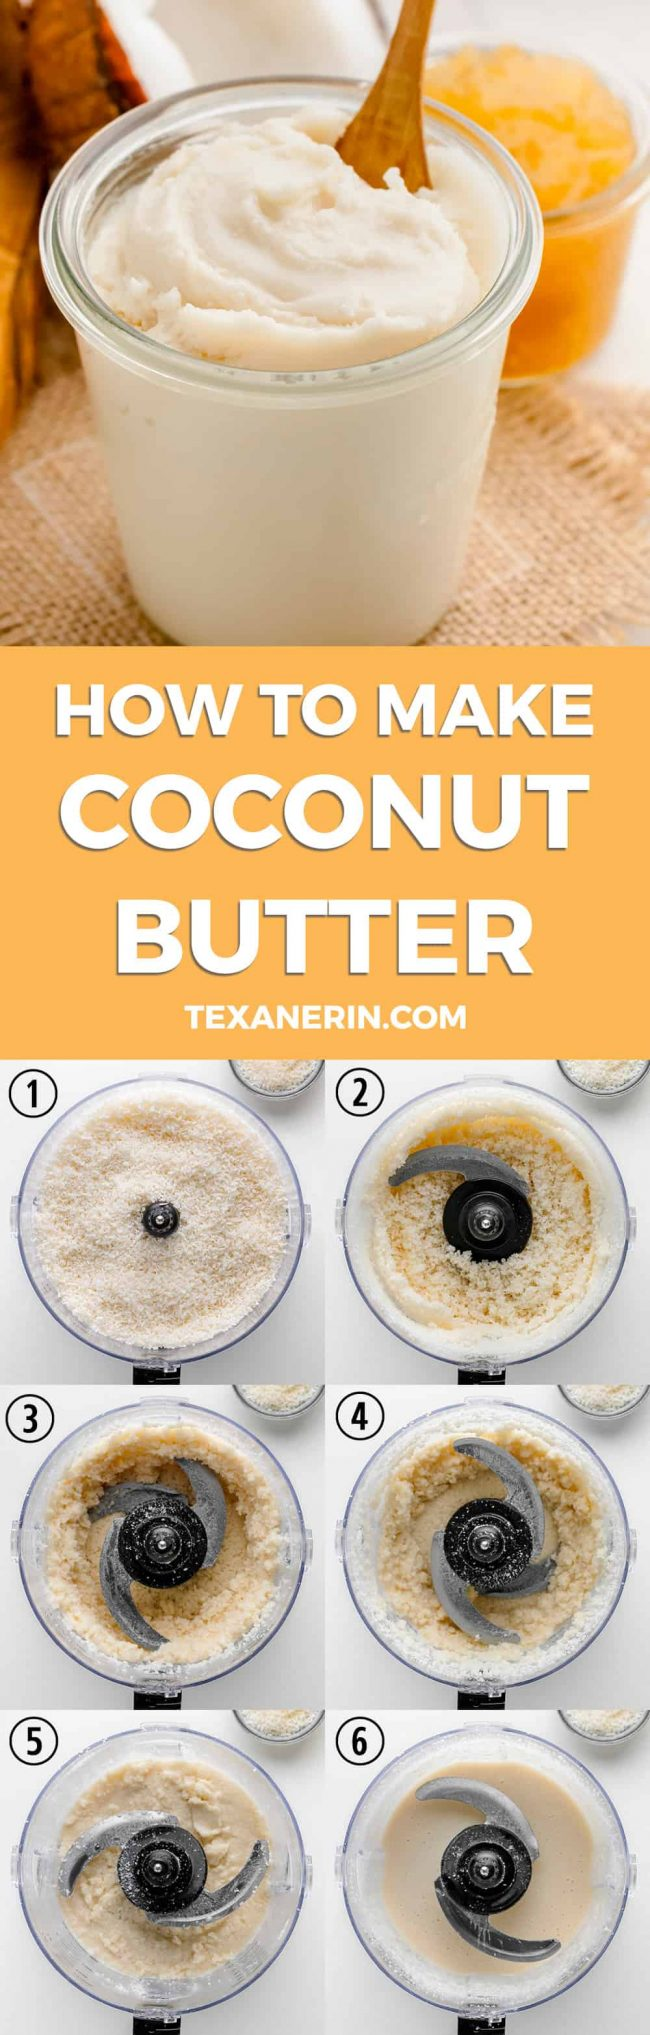 Homemade Coconut Butter – super easy and all you need is shredded coconut and a food processor or high-speed blender! Naturally paleo, vegan, and gluten-free.